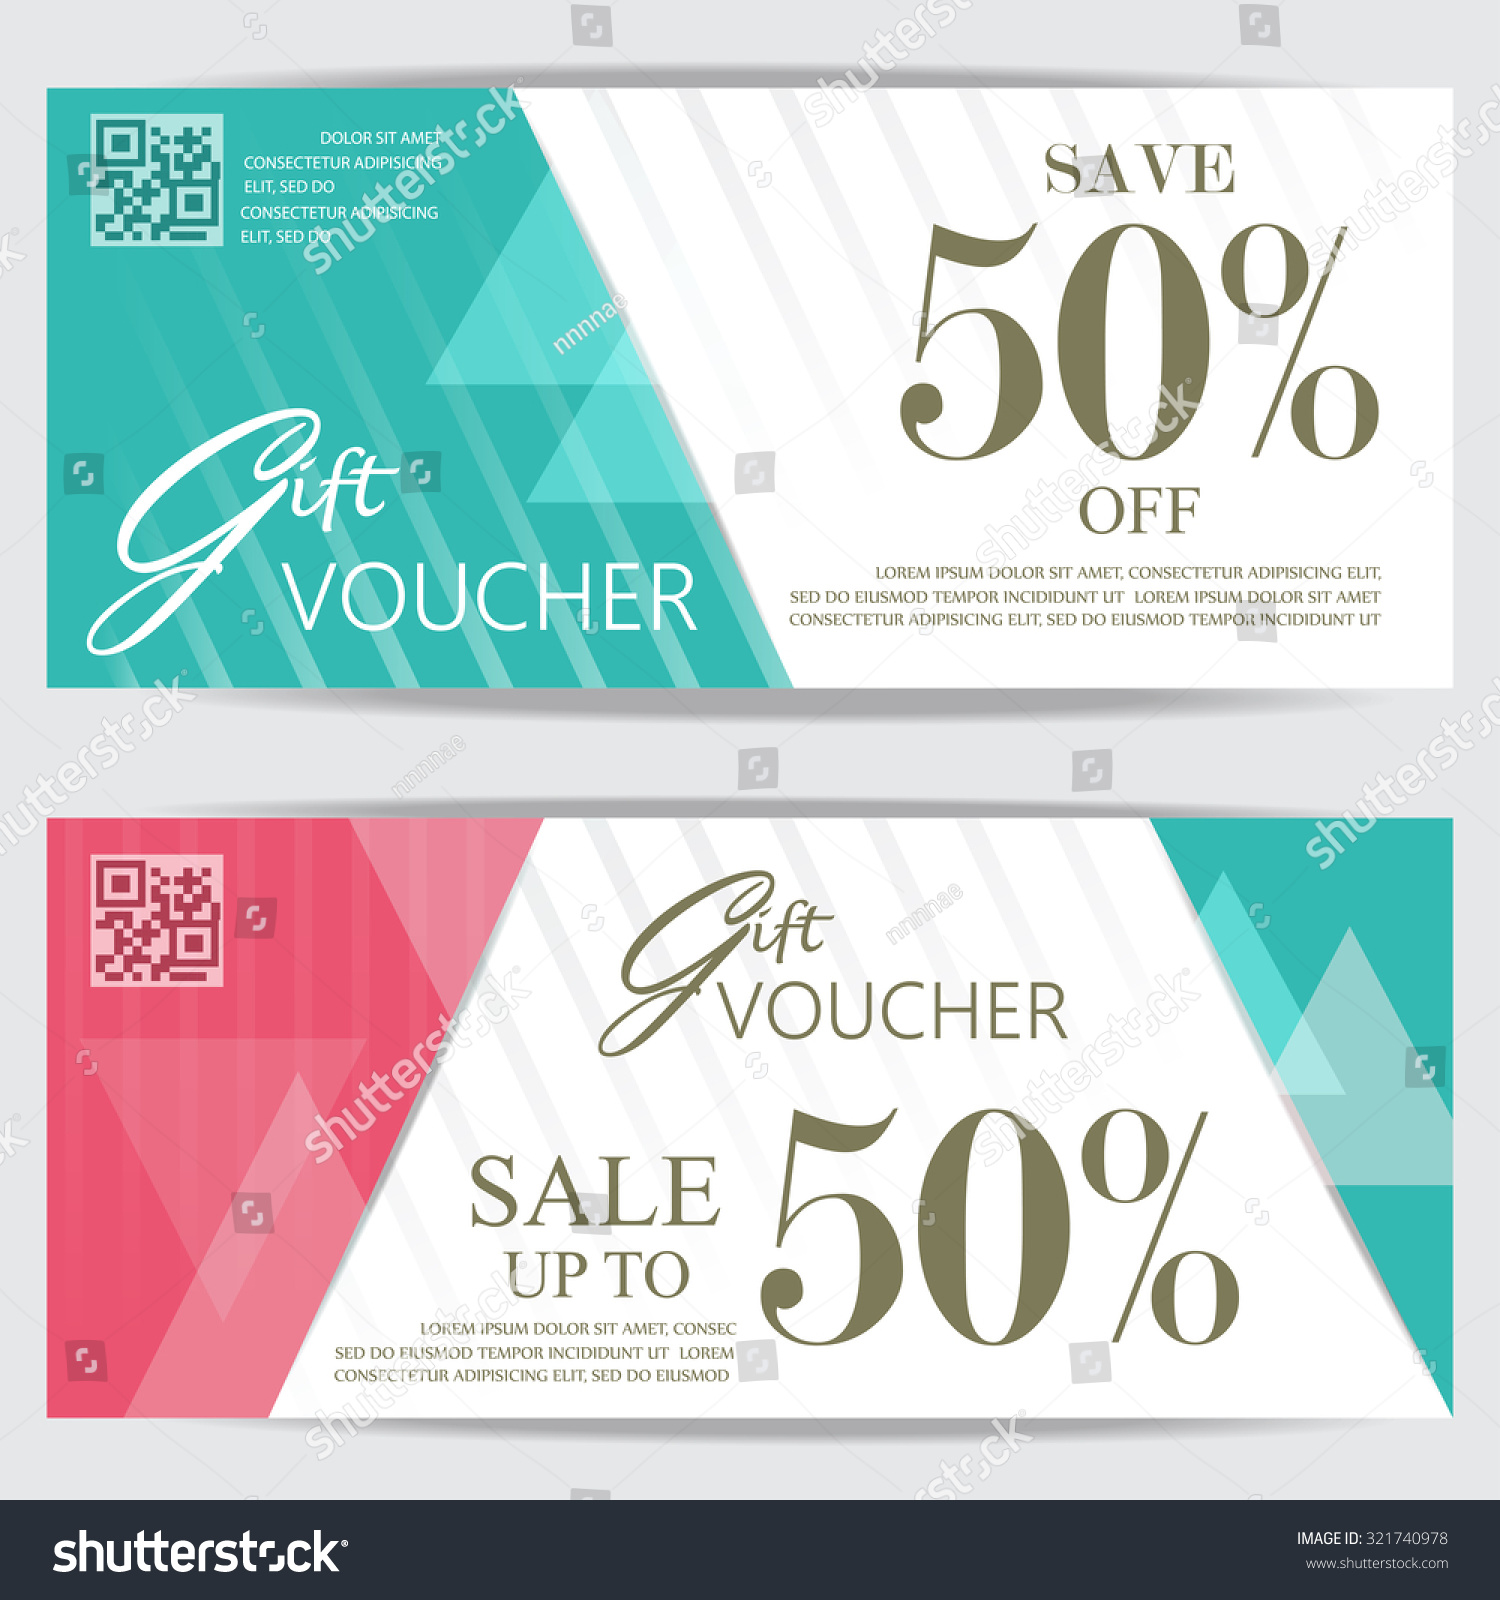 business coupon template paralegal resume objective examples tig gift voucher certificate coupon template cute and modern style stock vector gift voucher certificate coupon template cute and modern style can be use for